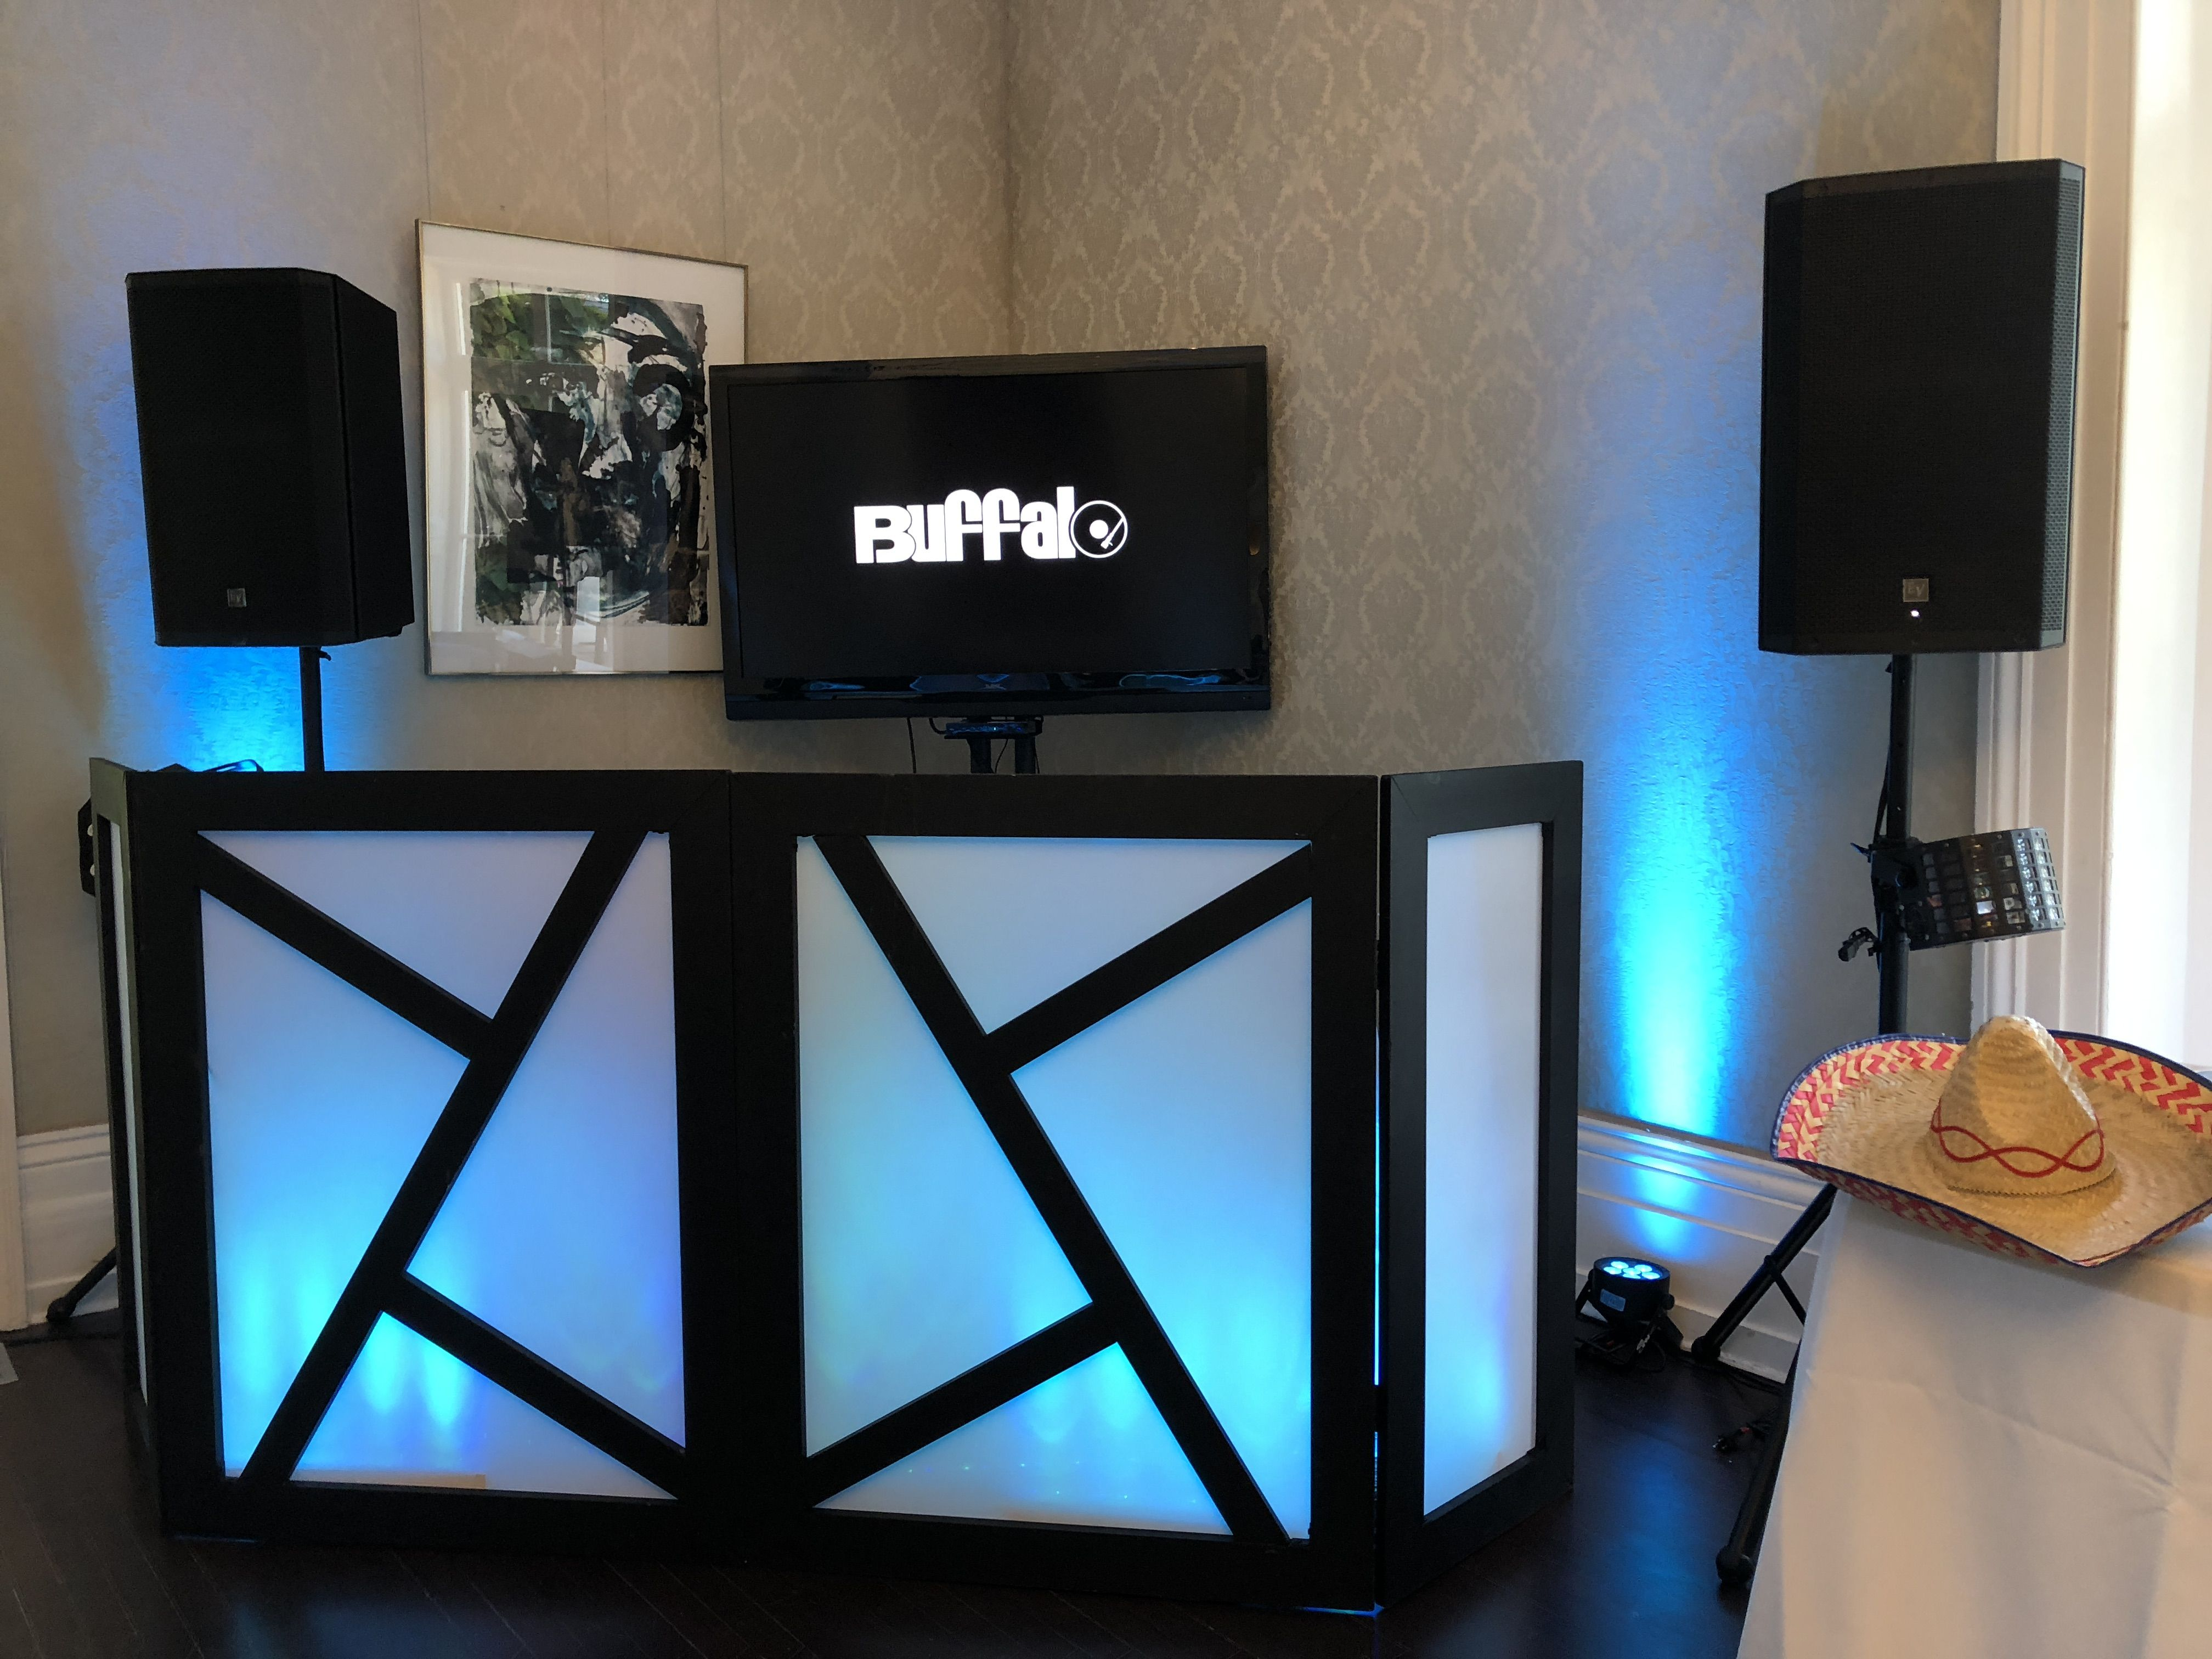 Diy Dj Facade For Weddings Or Special Events Hide The Cables And Dj Equipment With This Homemade Facade Facade Pour Dj L Wedding Dj Setup Booth Decor Dj Room